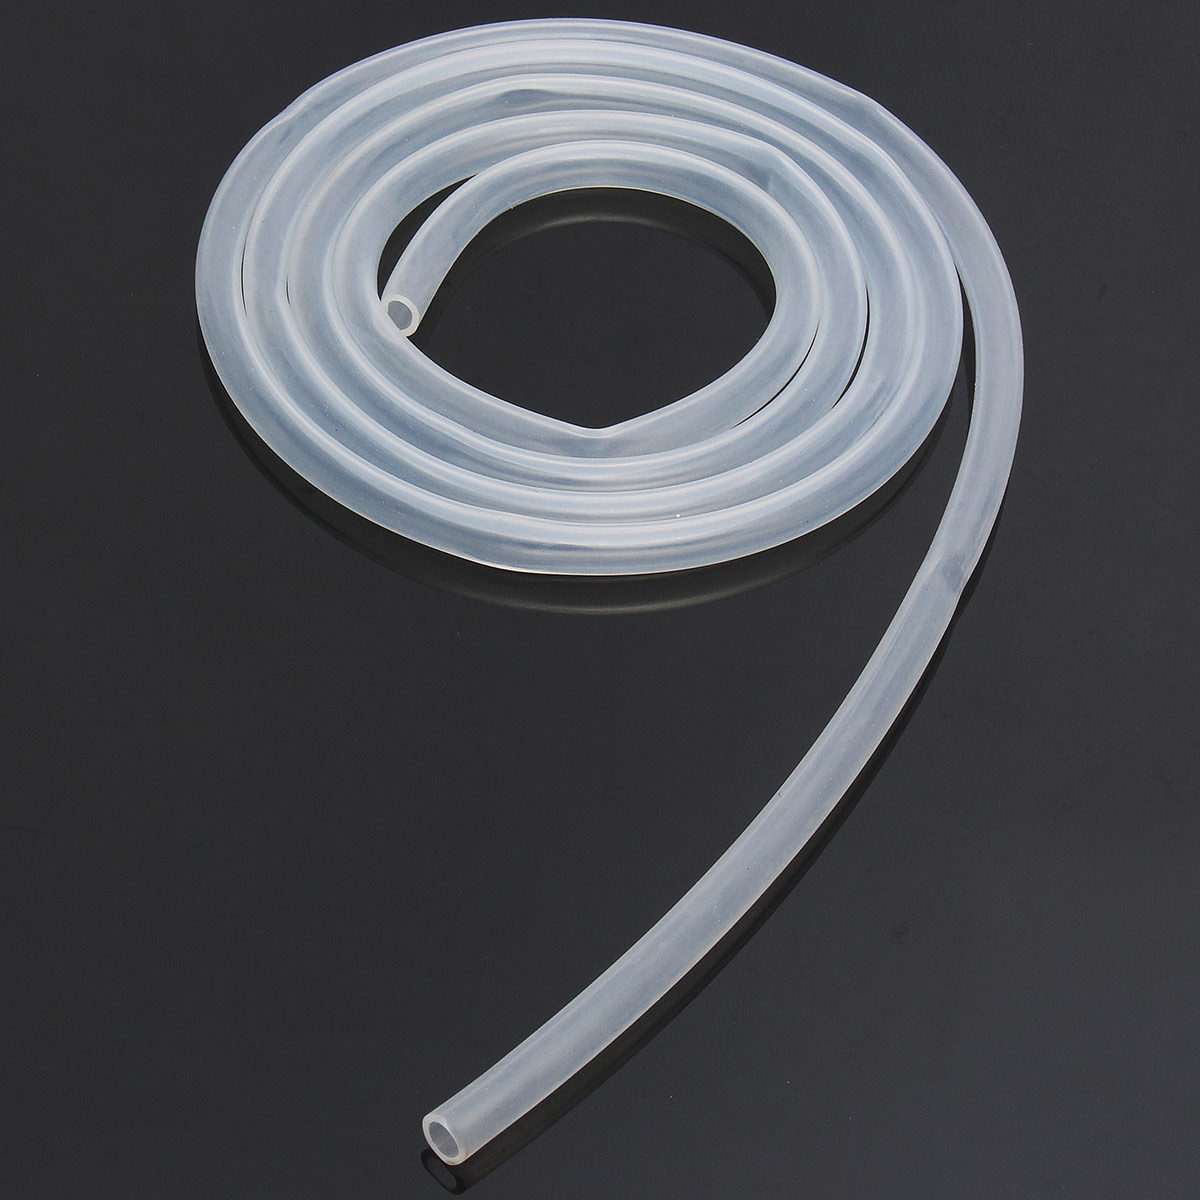 Clear Translucent Silicone Tubing Fda Approved Milk Hose